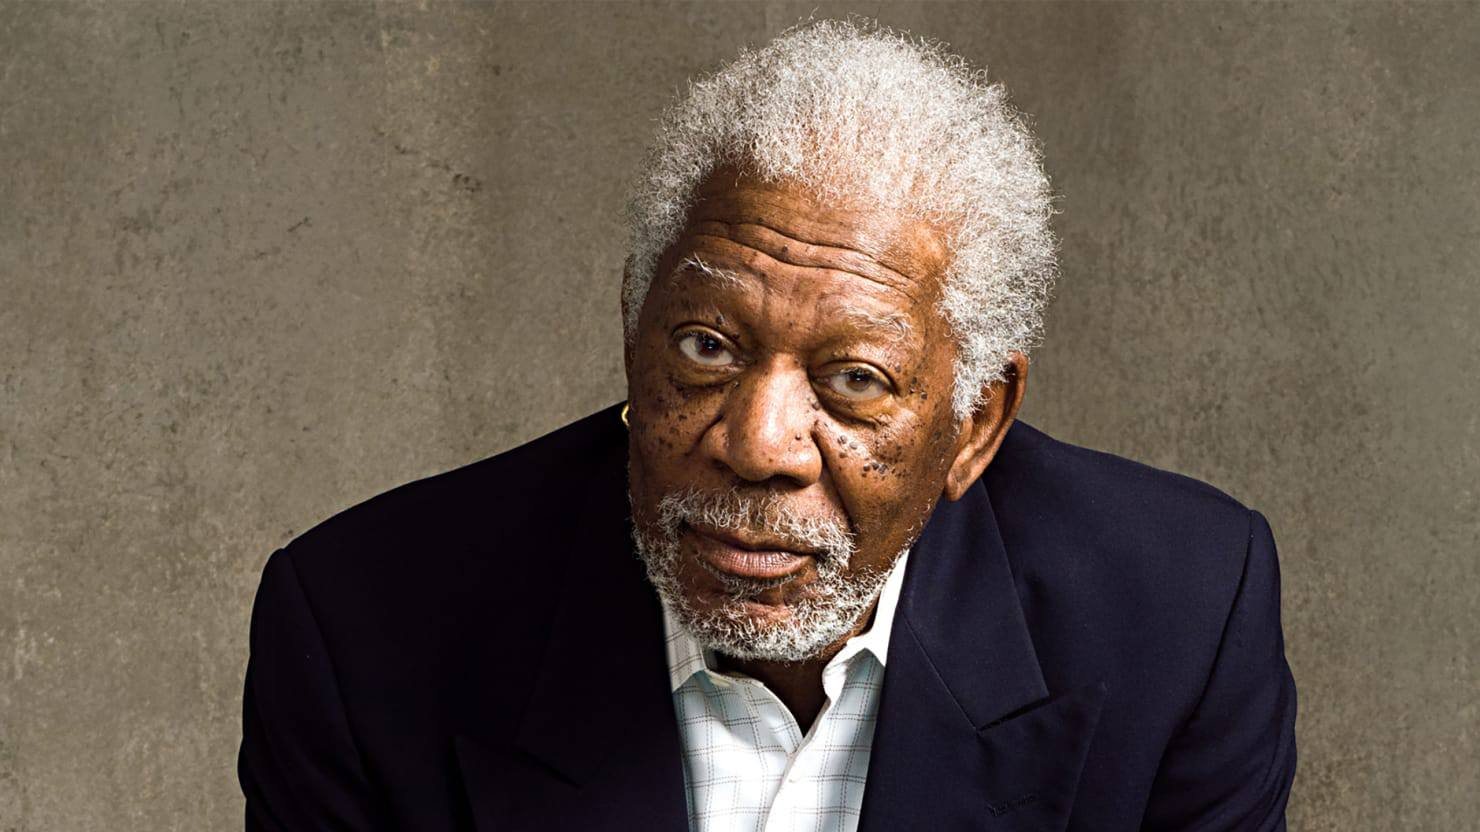 morgan freeman has been accused of sexual harassment by